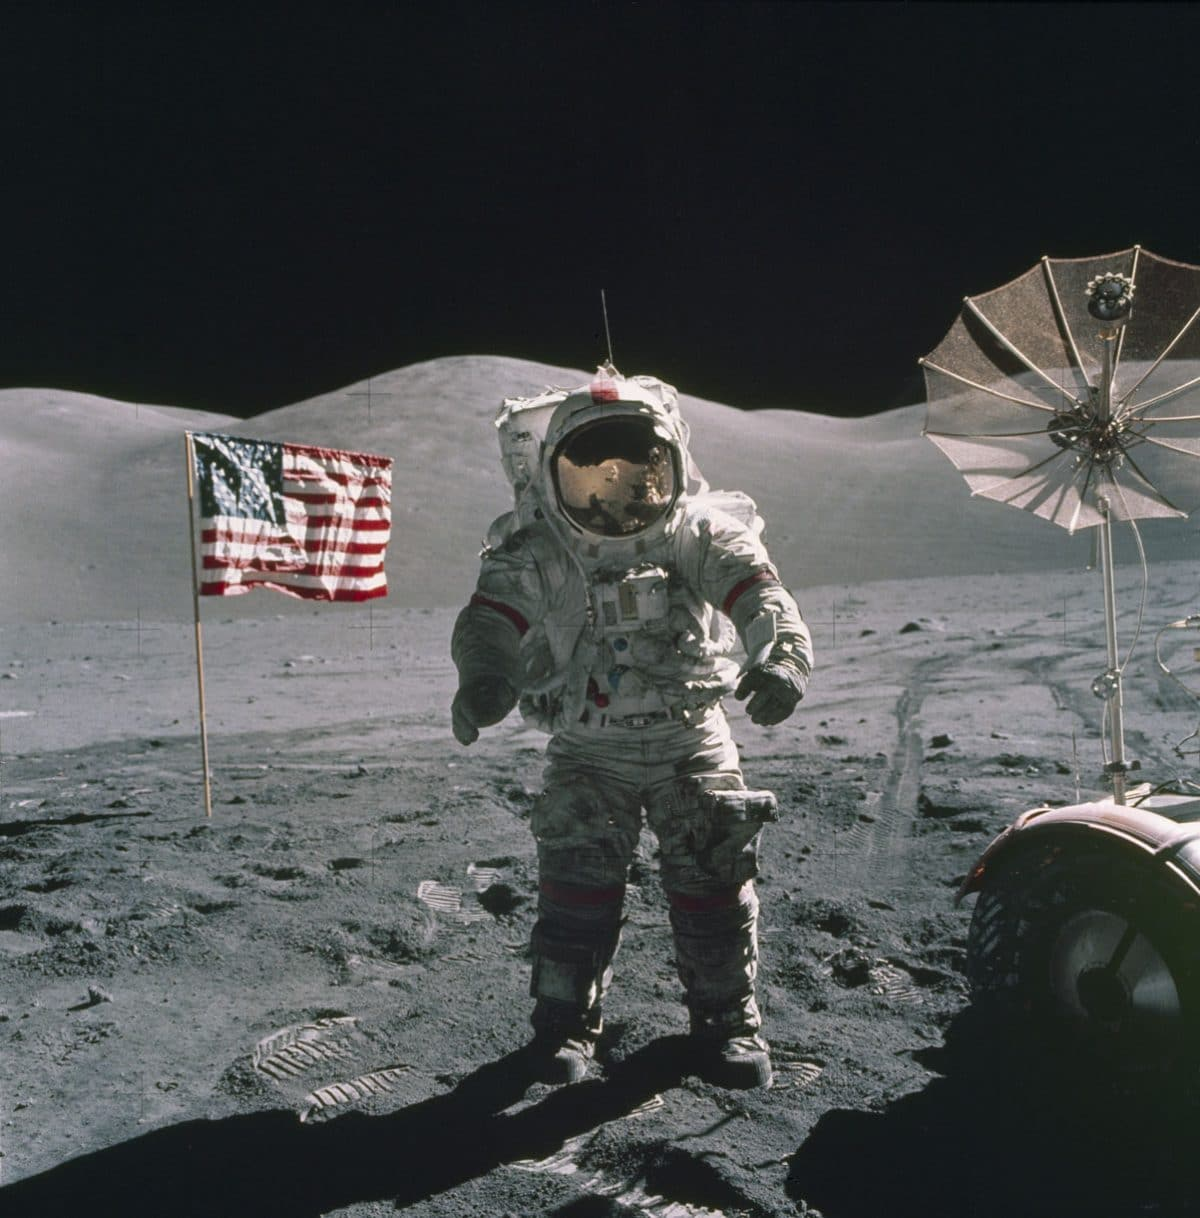 Apollo 17 commander Gene Cernan on the Moon